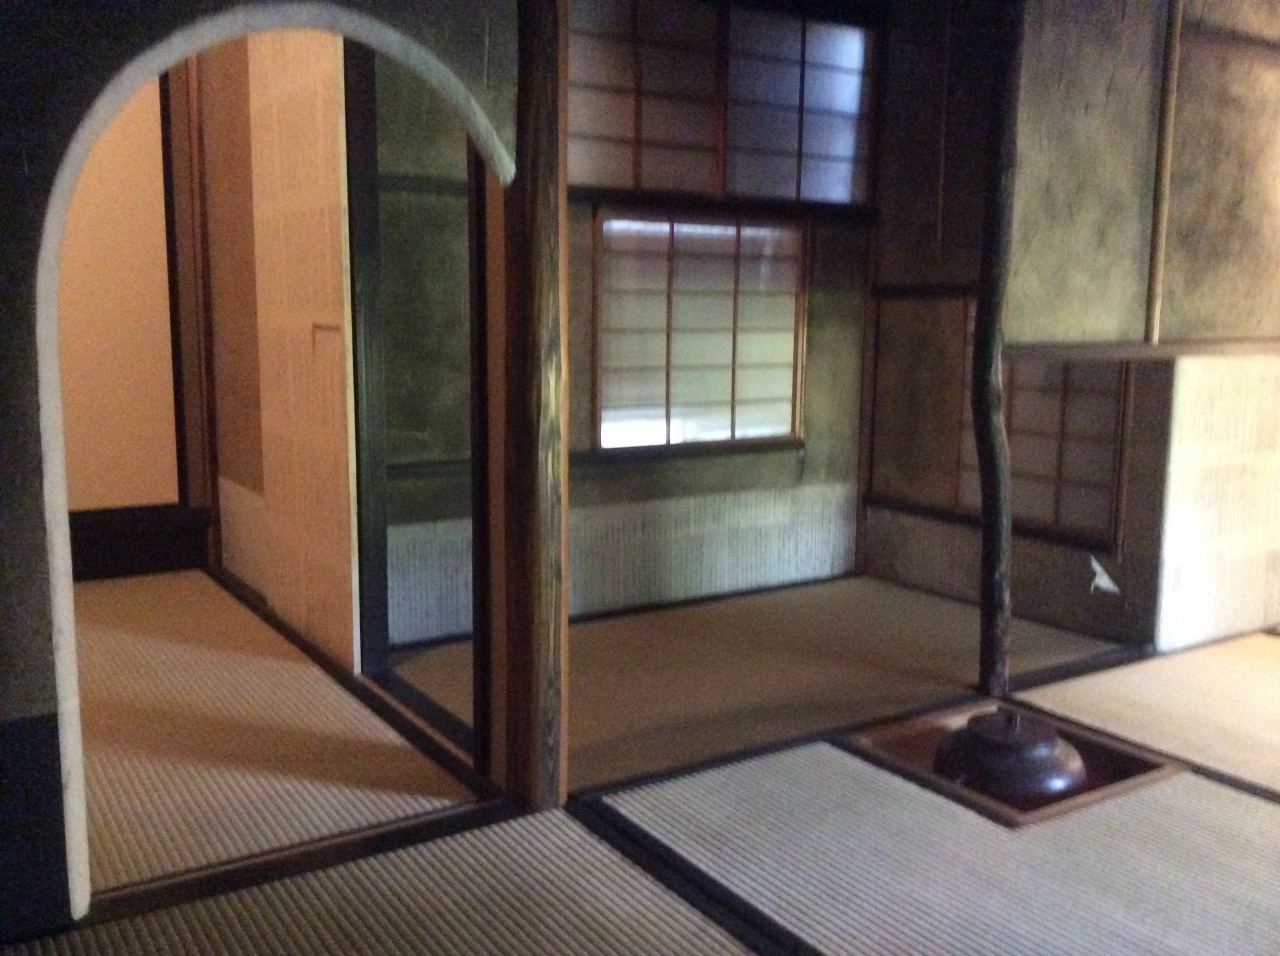 Places for Tea Ceremony